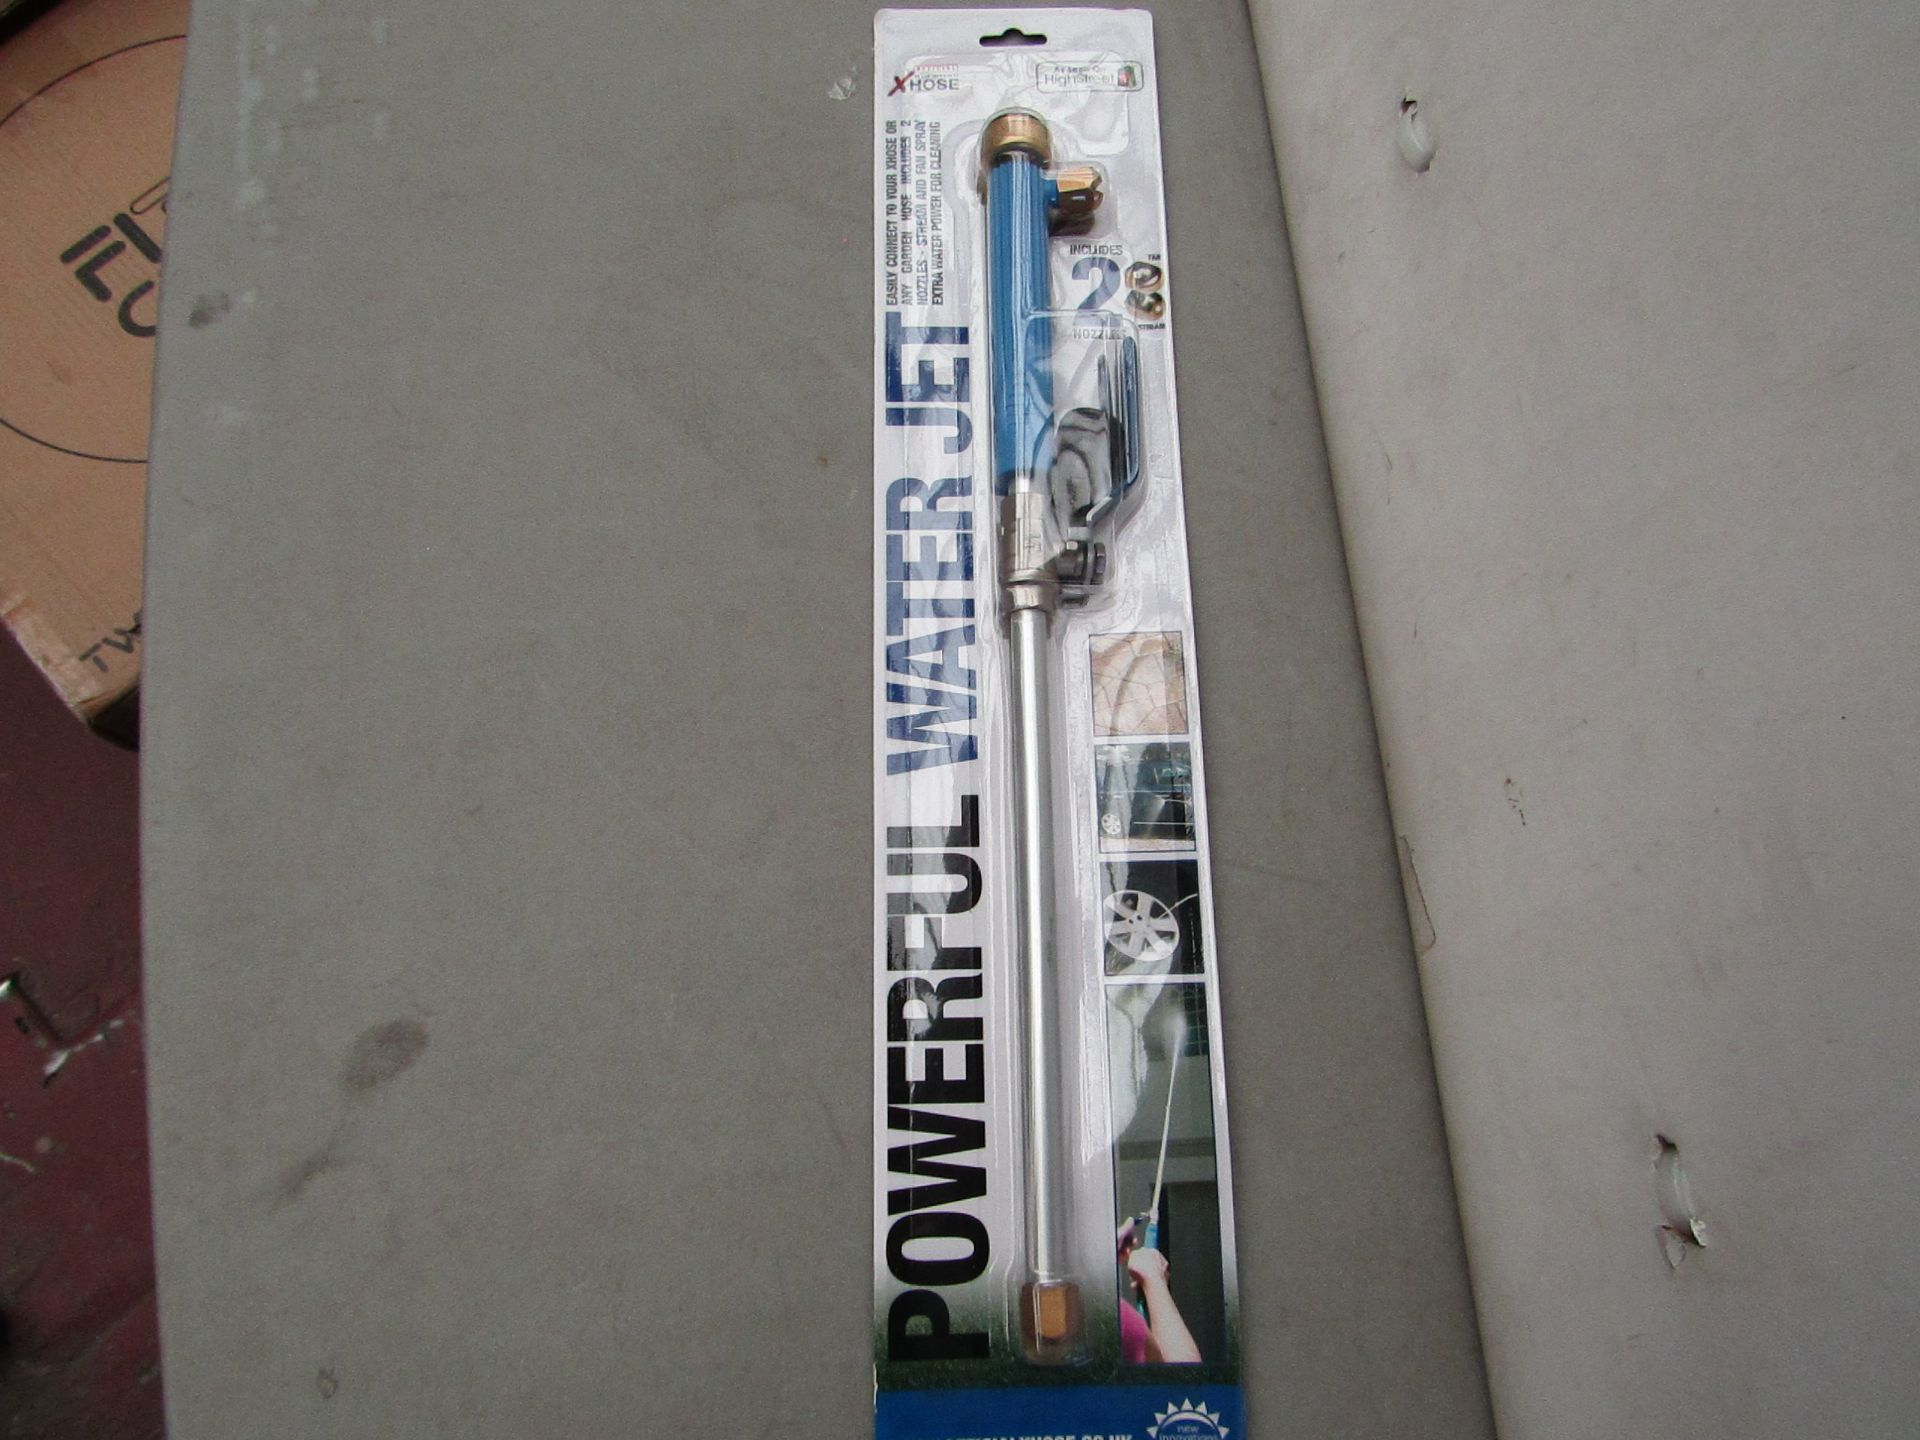 Lot 10 - | 1x | XHOSE POWERFUL WATER JET ACCESSORY | NEW | NO ONLINE RESALE |